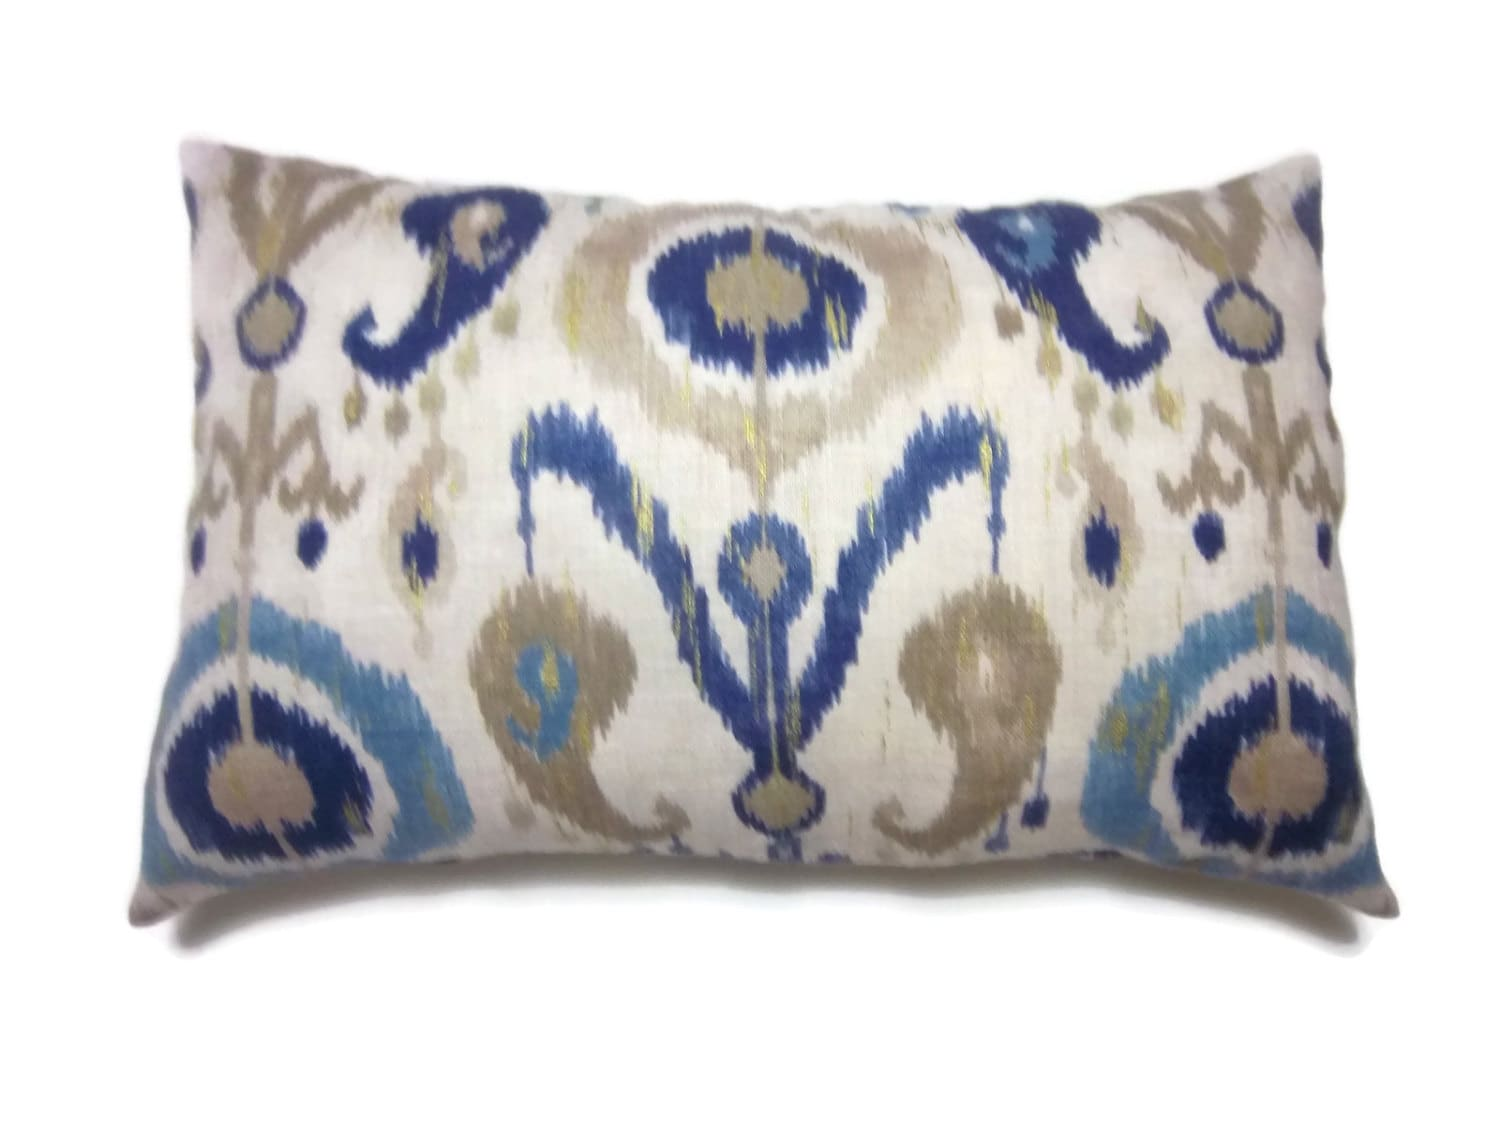 Decorative Linen Lumbar Pillow Cover Shades Of Blue Taupe Off